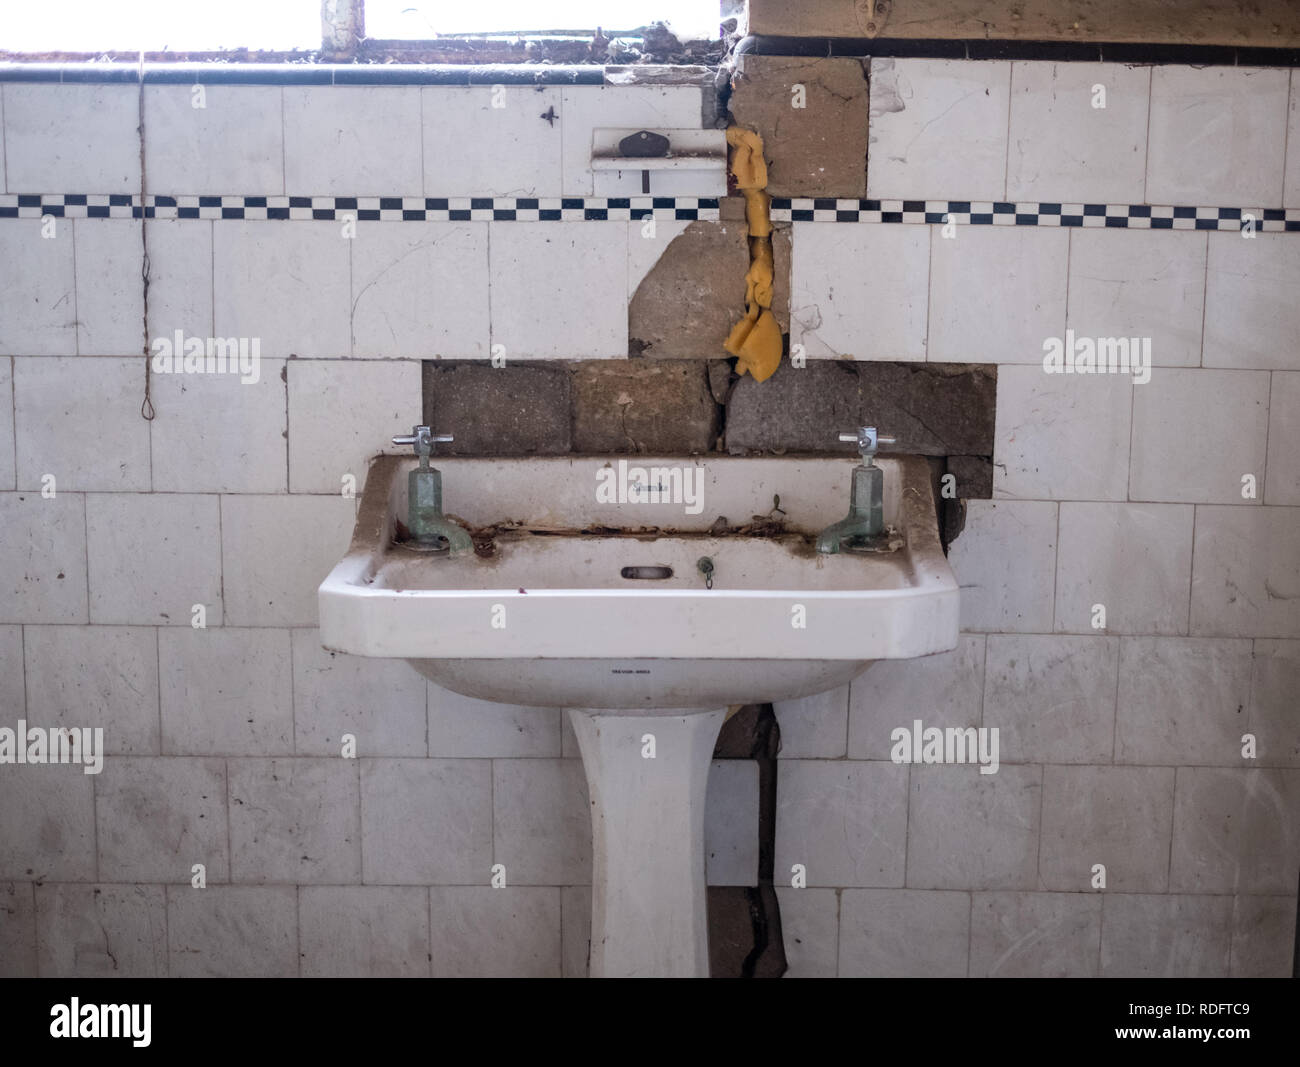 Close up of Shanks hand basin and original tiles in derelict deco style house. House is due for demolition. Rayners Lane, Pinner, Middlesex, UK - Stock Image